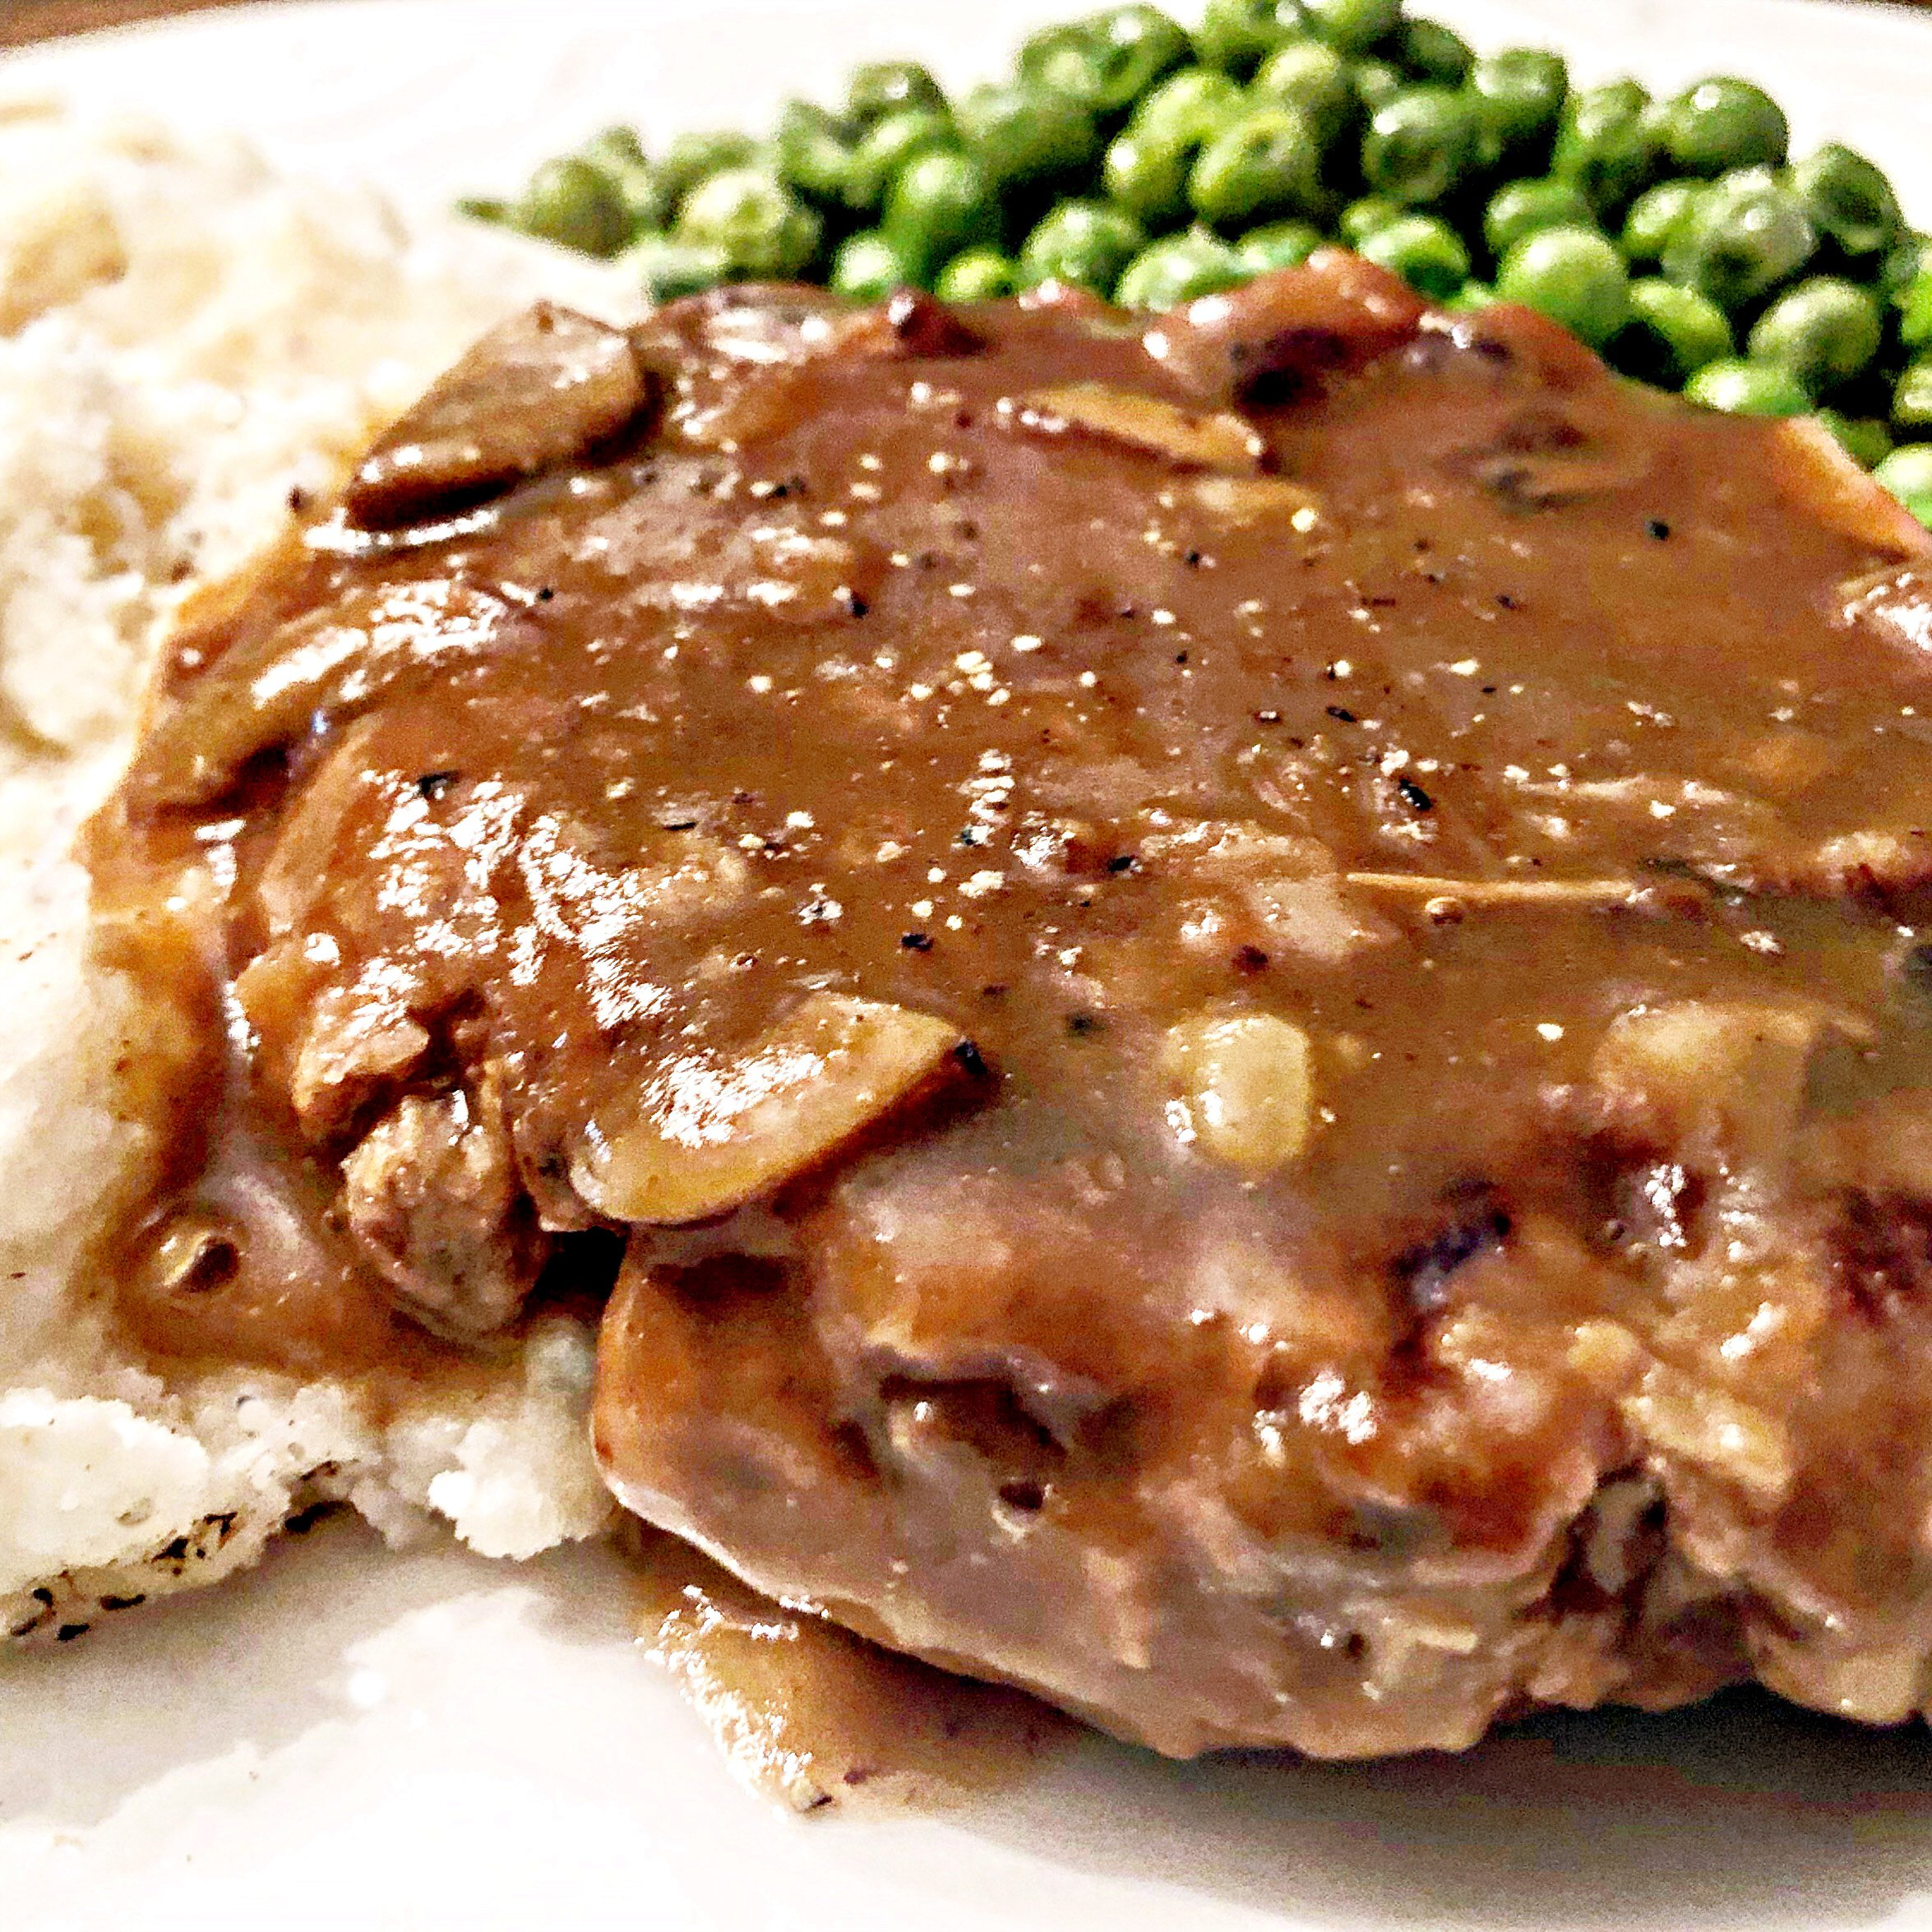 Vegan Salisbury Steak with Mushroom Gravy